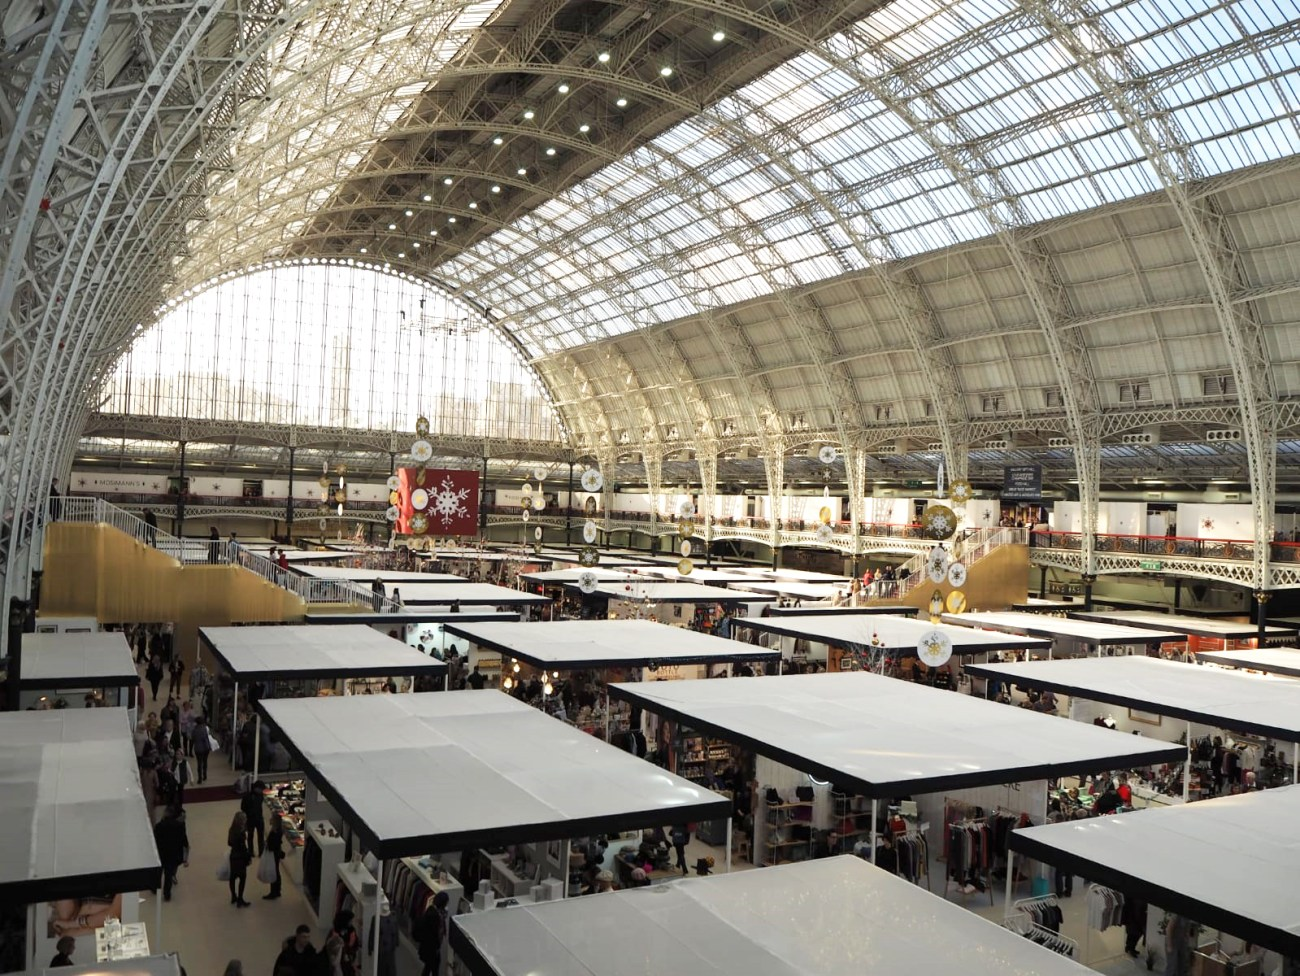 A view of the roofed stalls from the second level